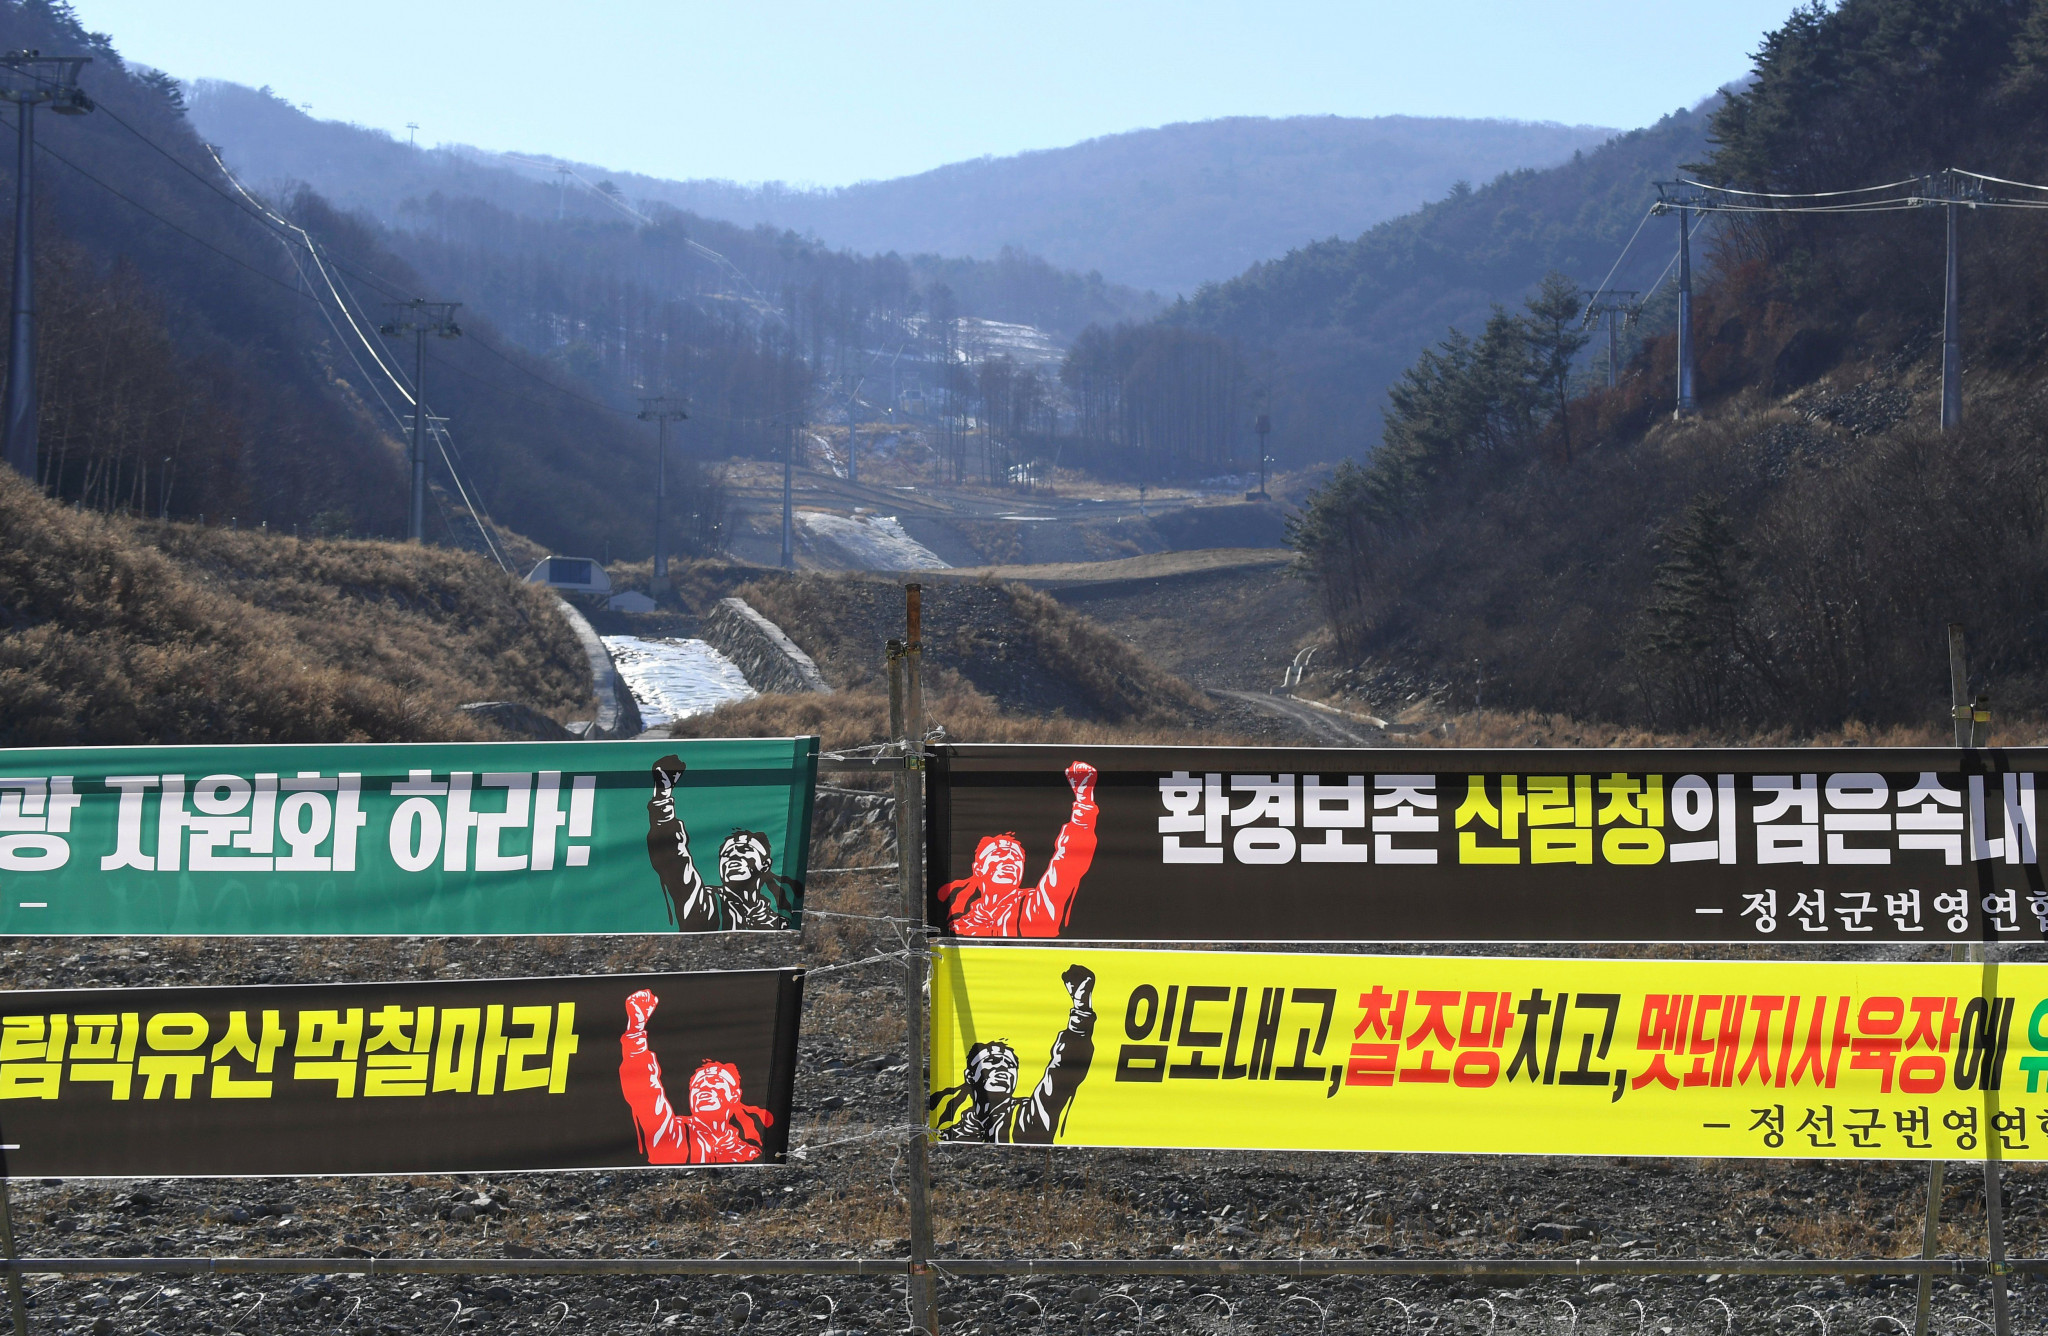 Protest banners demanding the development of the Jeongseon Alpine Centre, where Alpine skiing events were held during Pyeongchang 2018, but which is now at the centre of a row about its future ©Getty Images